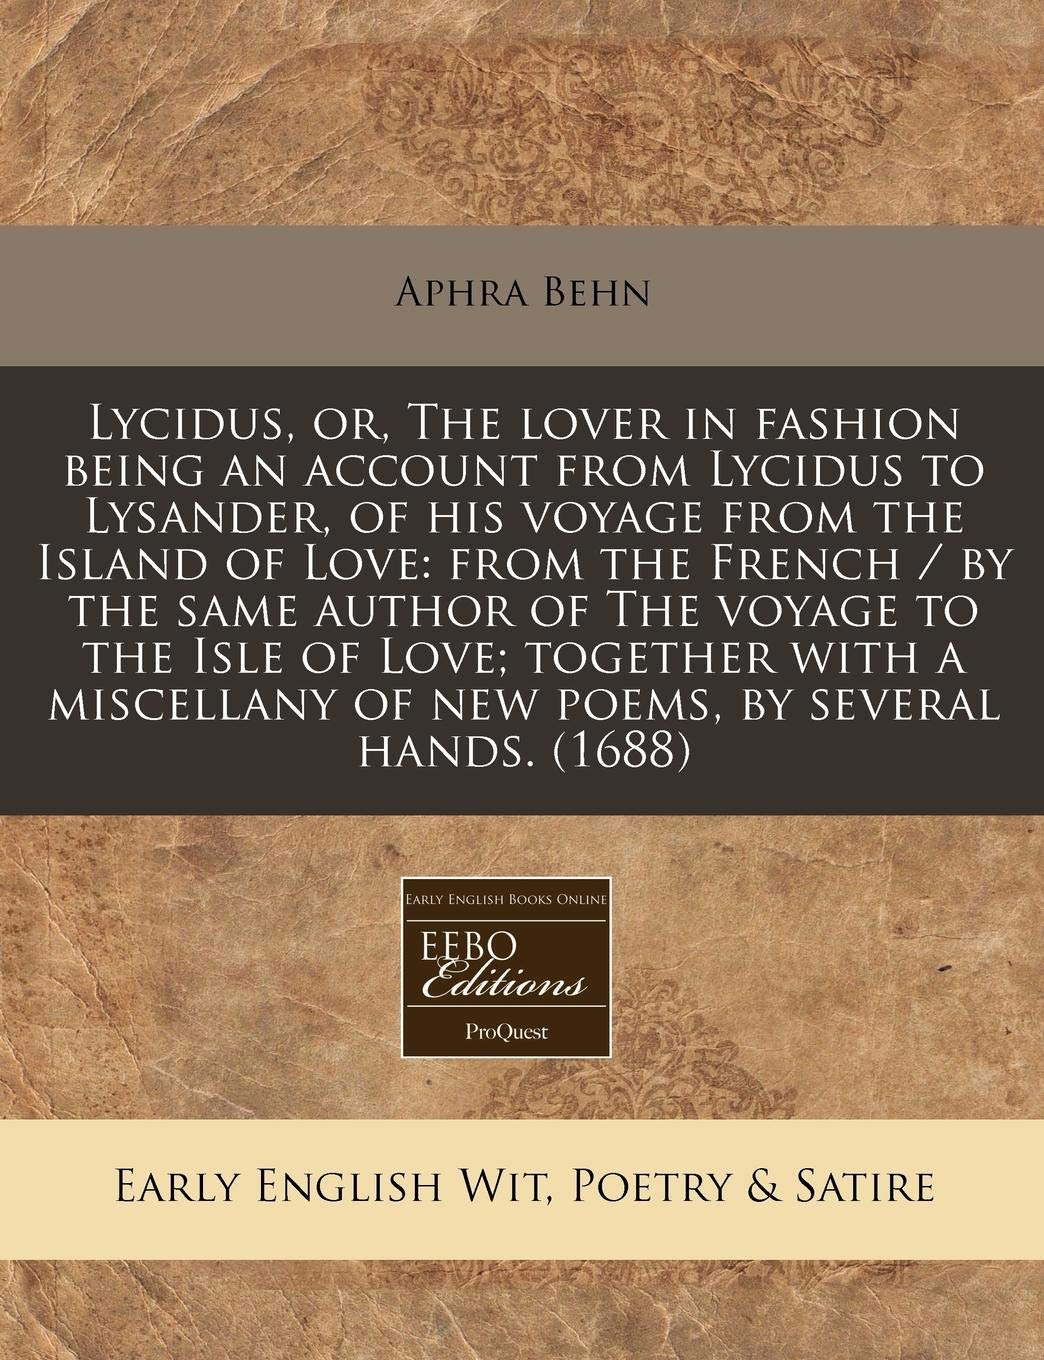 Lycidus Or The Lover In Fashion Being An Account From Lycidus To